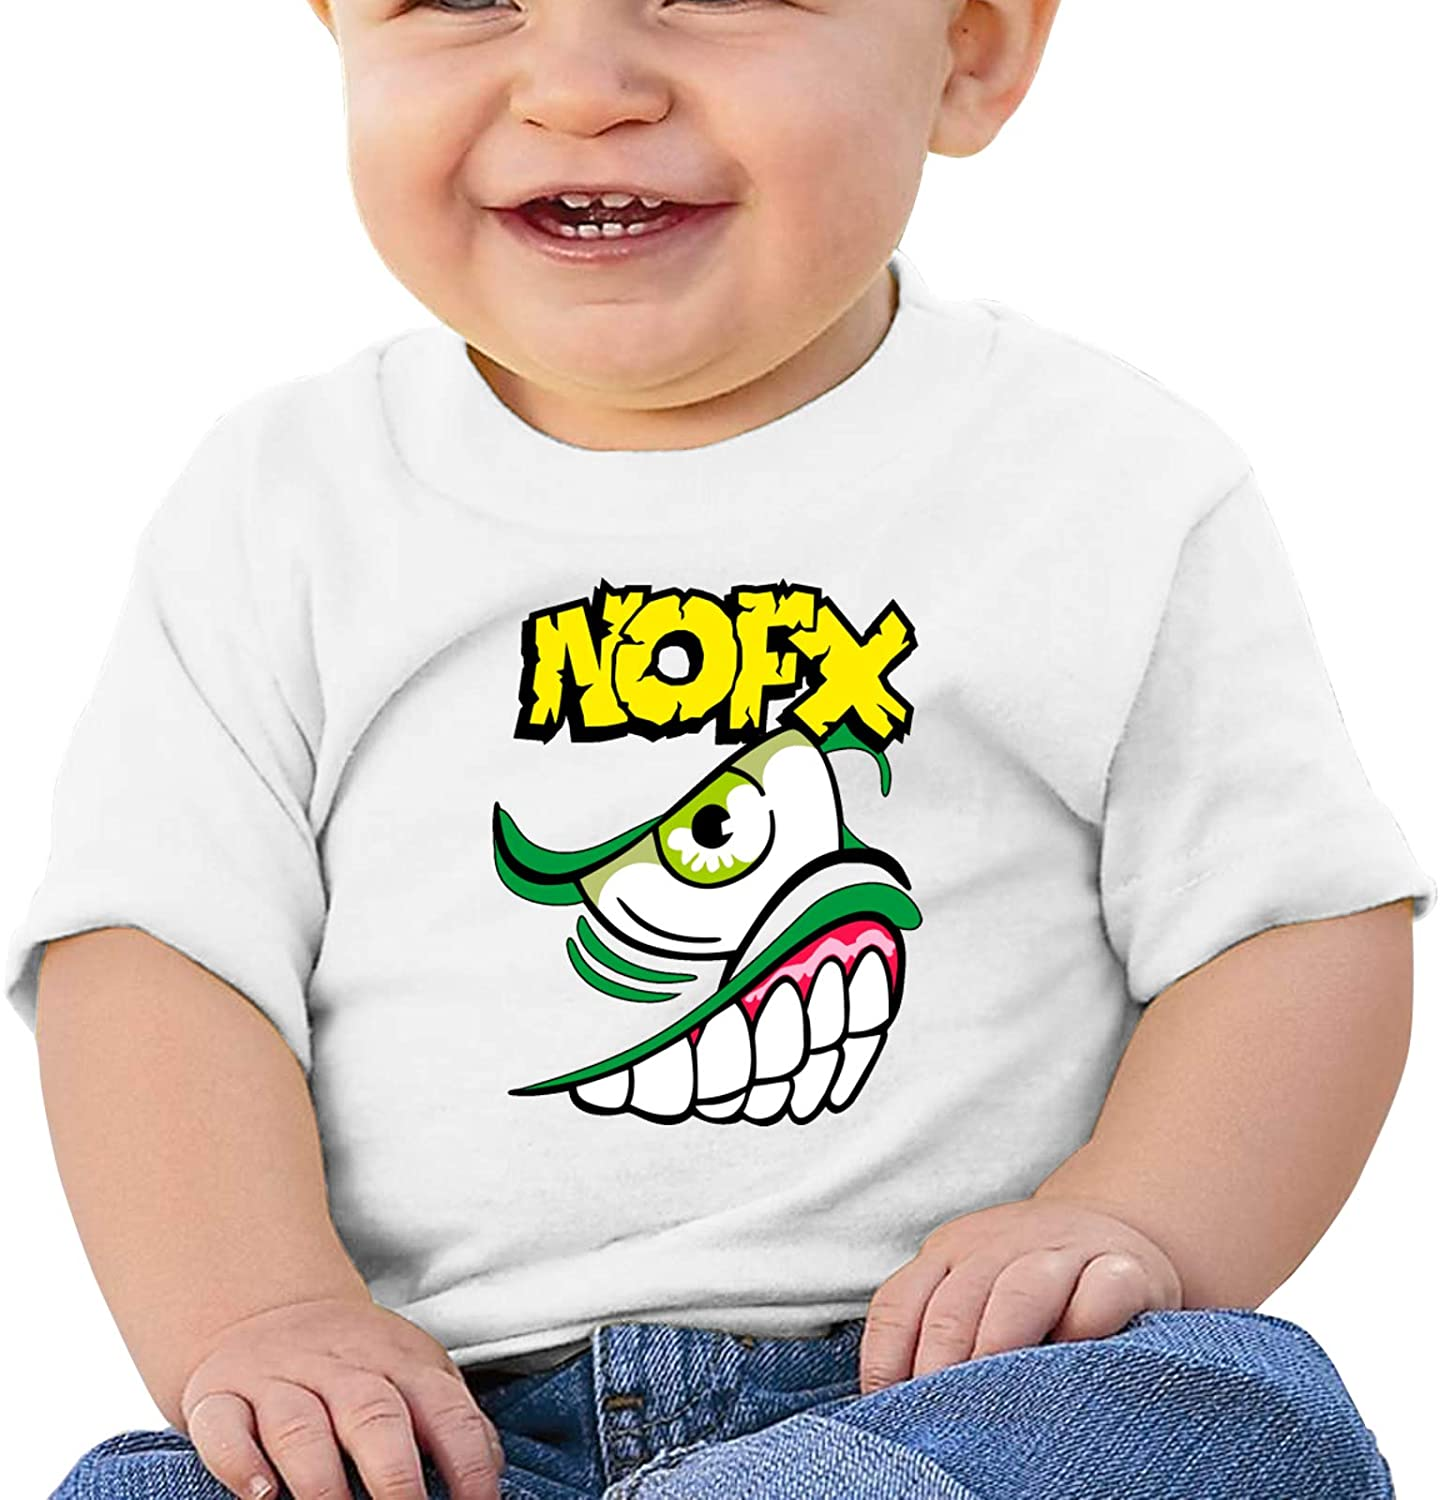 Wedday Baby T-Shirt Cute Infant Home NOFX Graphic Toddler T Boys and Girls Soft Short Sleeve Cotton Kids Shirt